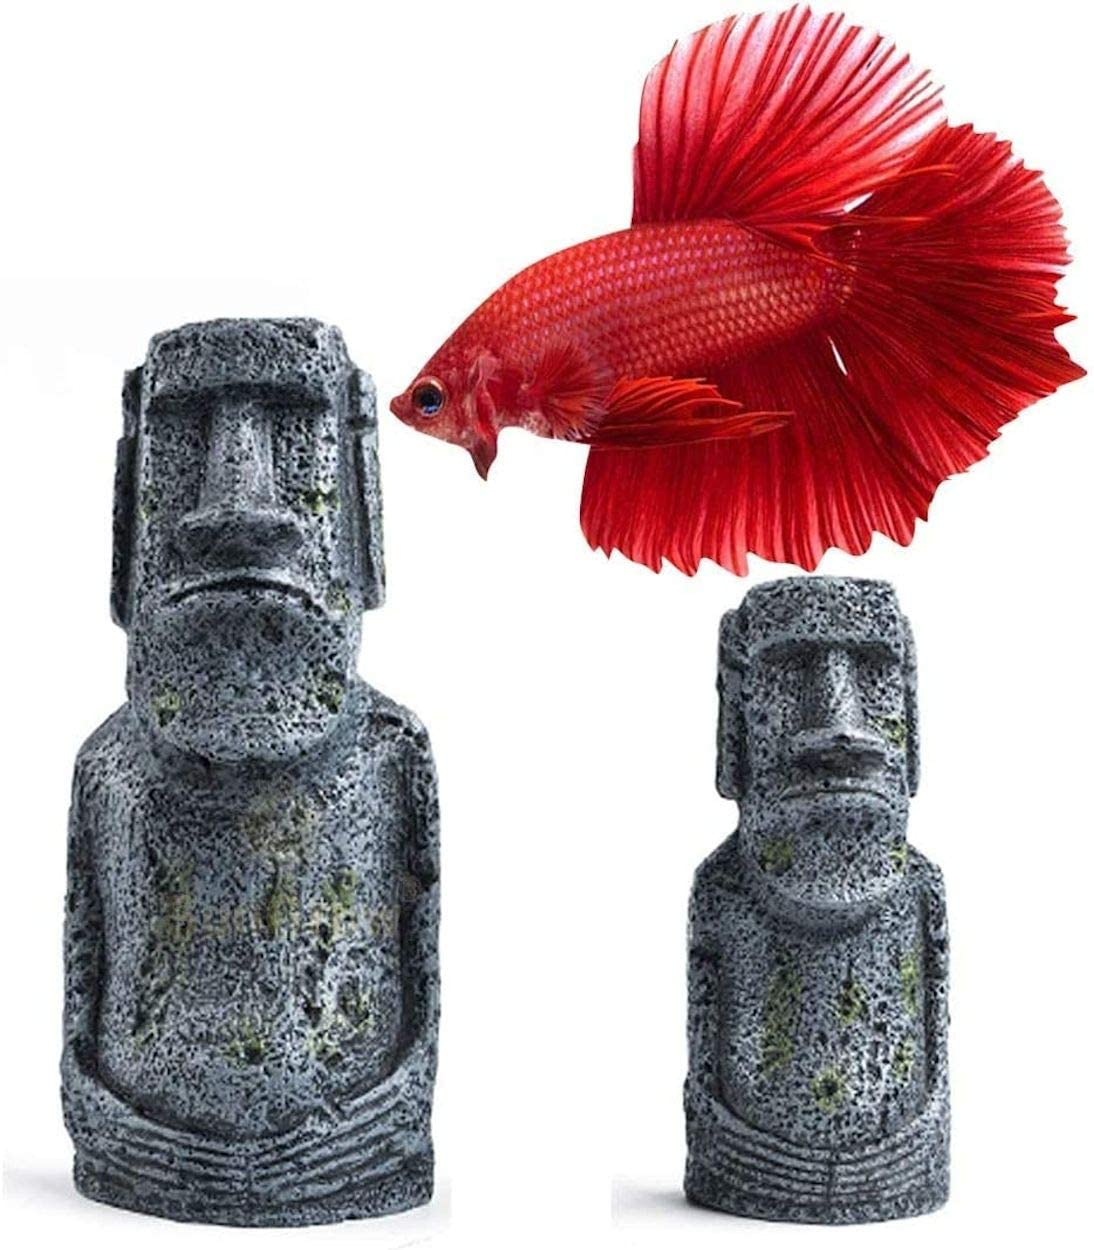 Sunken Wreck Fishing Aquarium Décor - Give Rustic and Vintage Look to Your Water Tank - Fish Tank Cave for Healthy Environment - Durable Resin Material - Aquarium or Home Decor (Betta Moai Decor)